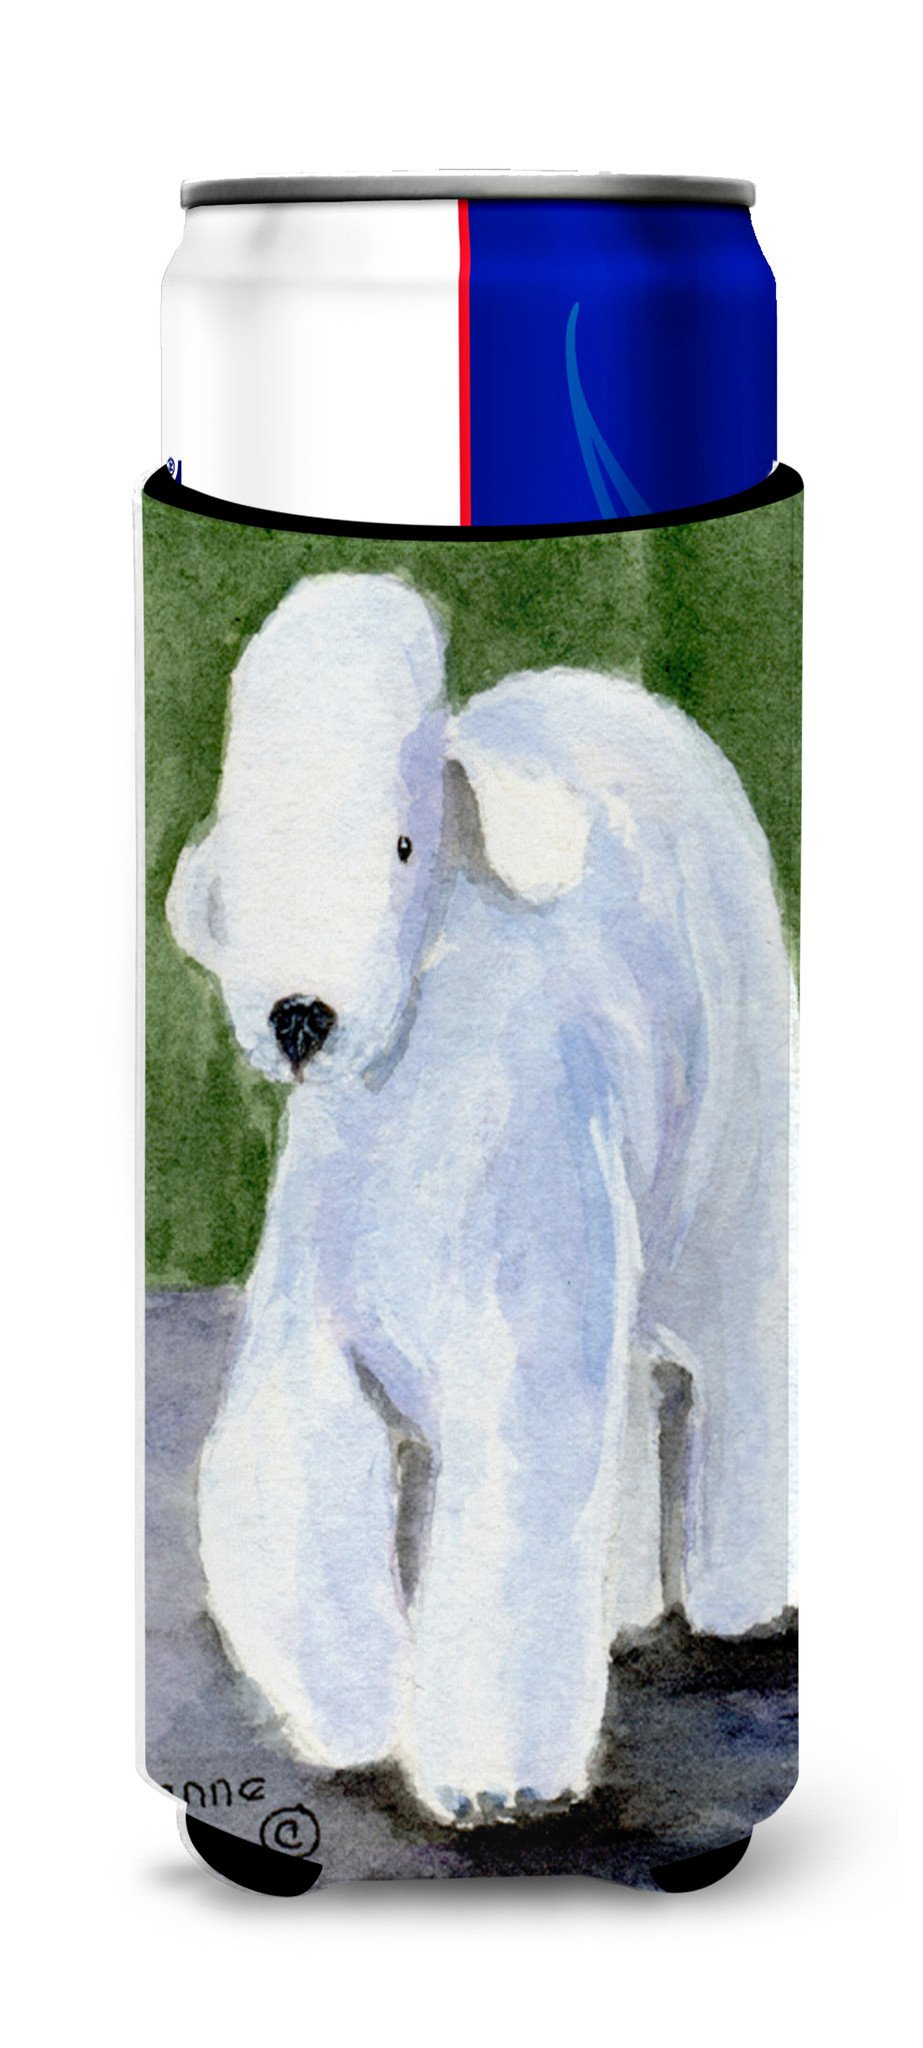 Bedlington Terrier Ultra Beverage Insulators for slim cans SS8683MUK by Caroline's Treasures